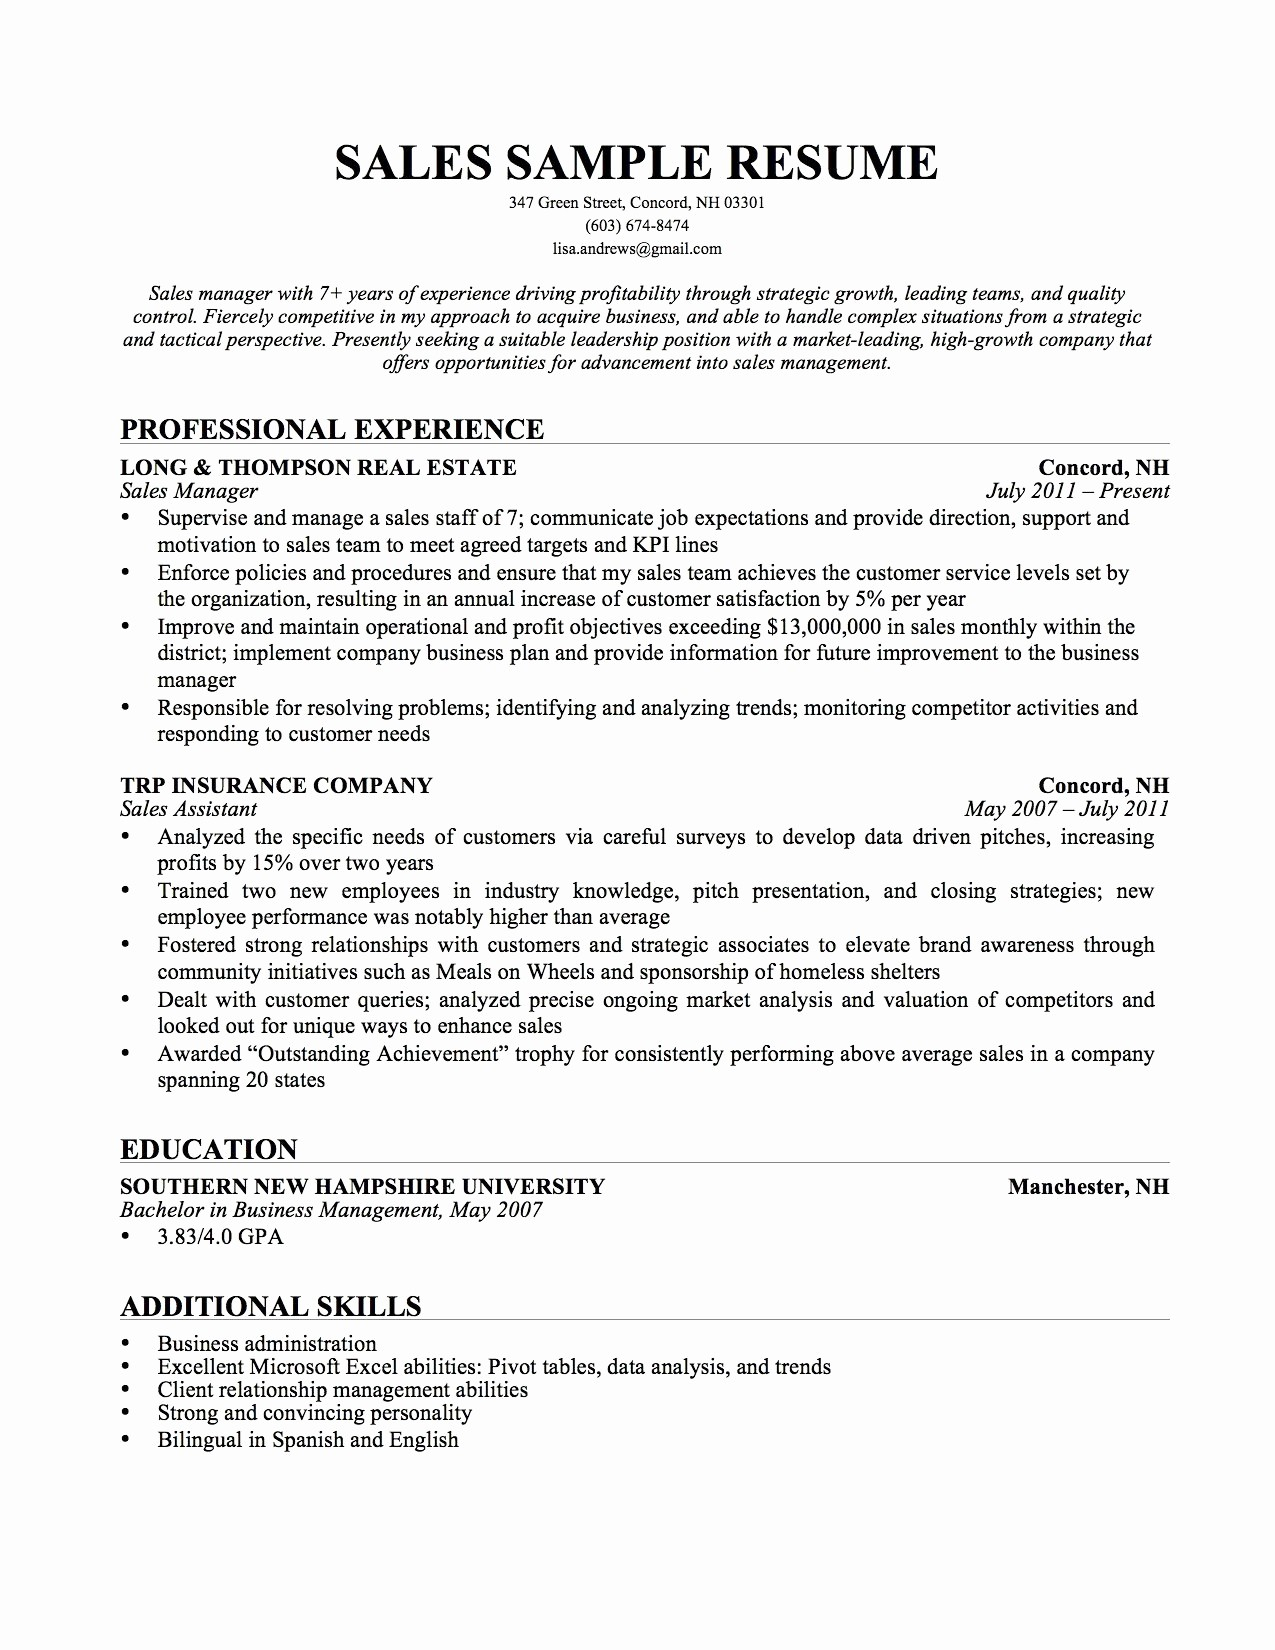 Cna Resume Objective - Cna Resume Examples Beautiful Resume Objective Entry Level Awesome